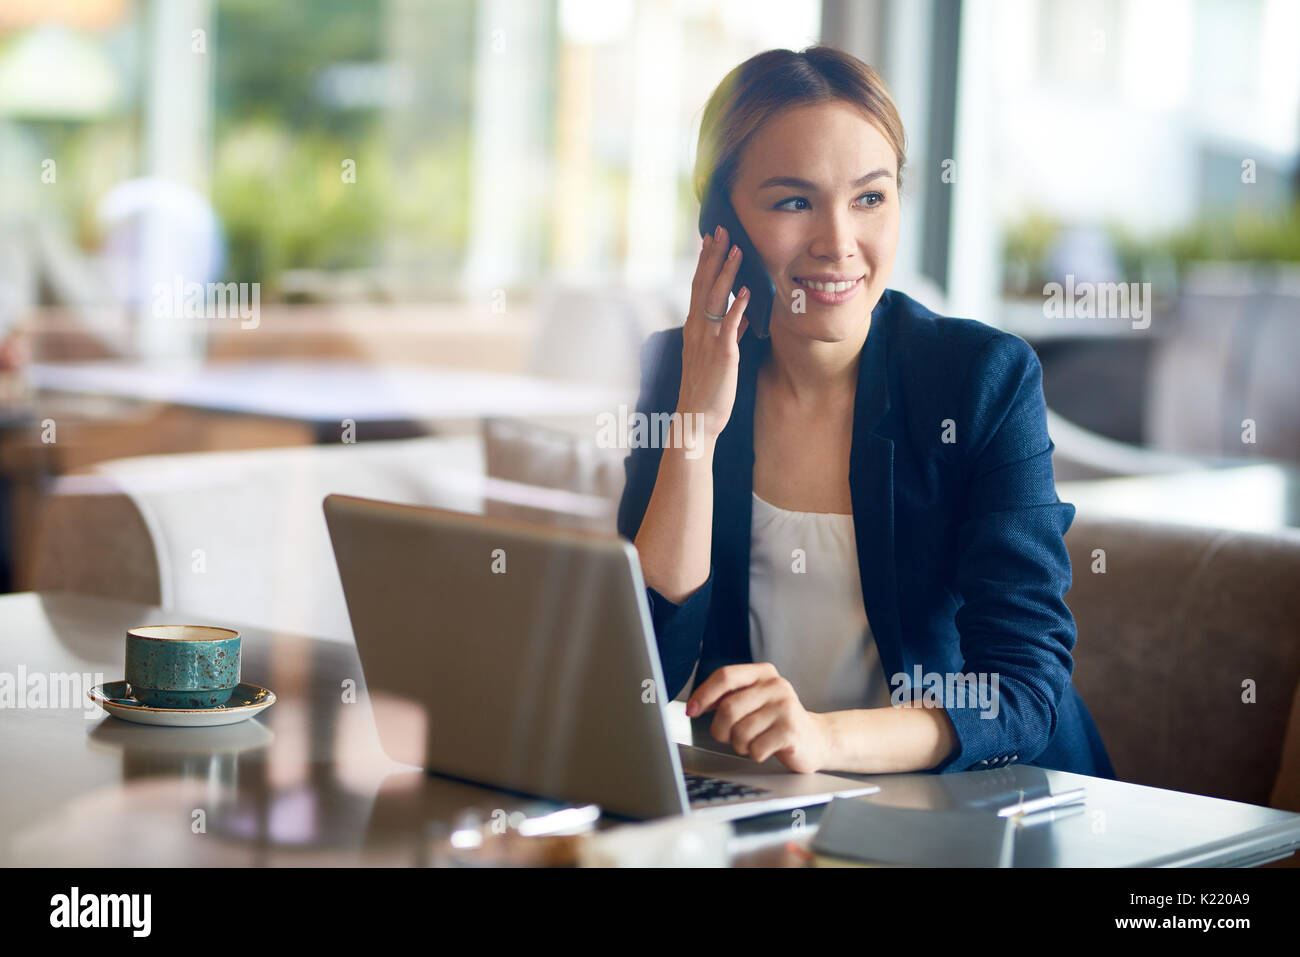 Pretty Entrepreneur Working at Cafe - Stock Image